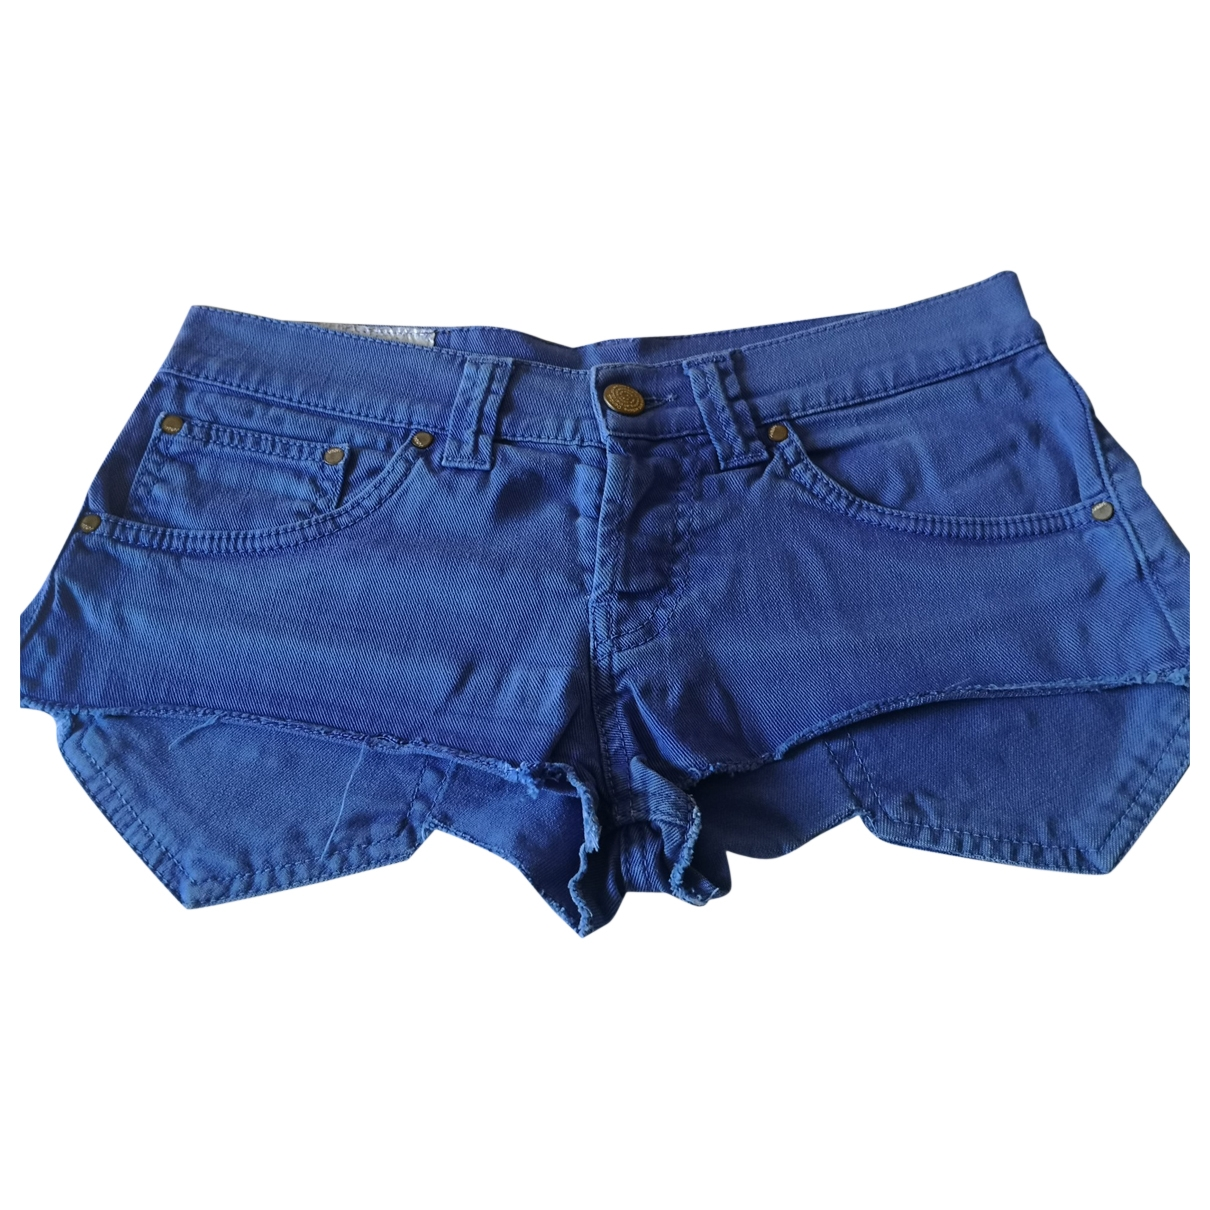 Dondup \N Shorts in  Blau Denim - Jeans